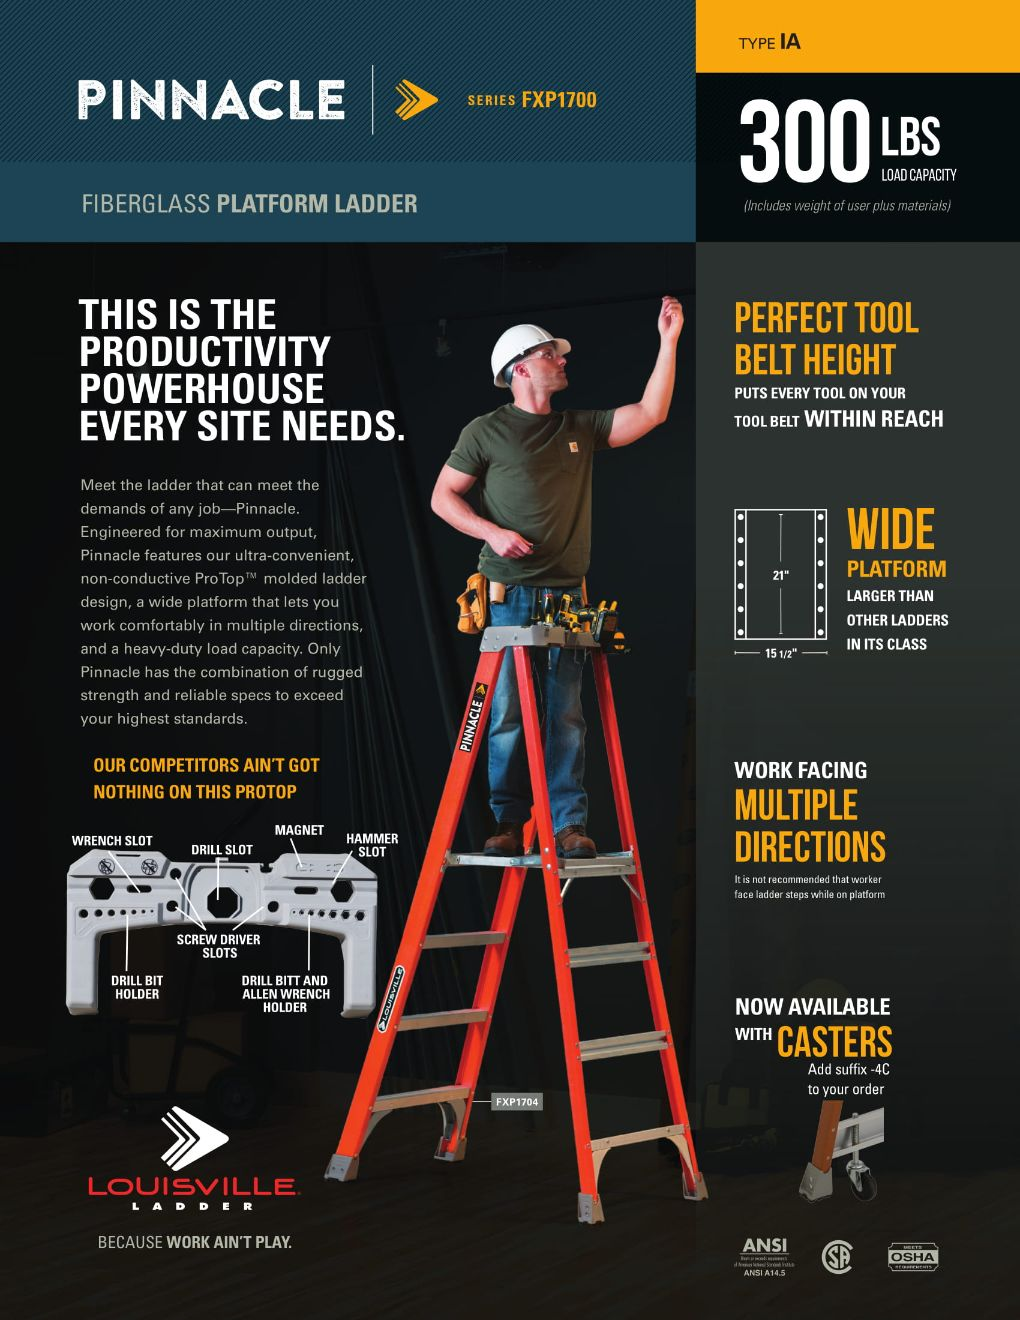 FXP1700 Pinnacle Ladder Flyer and Spec Sheet Marketing Material Image